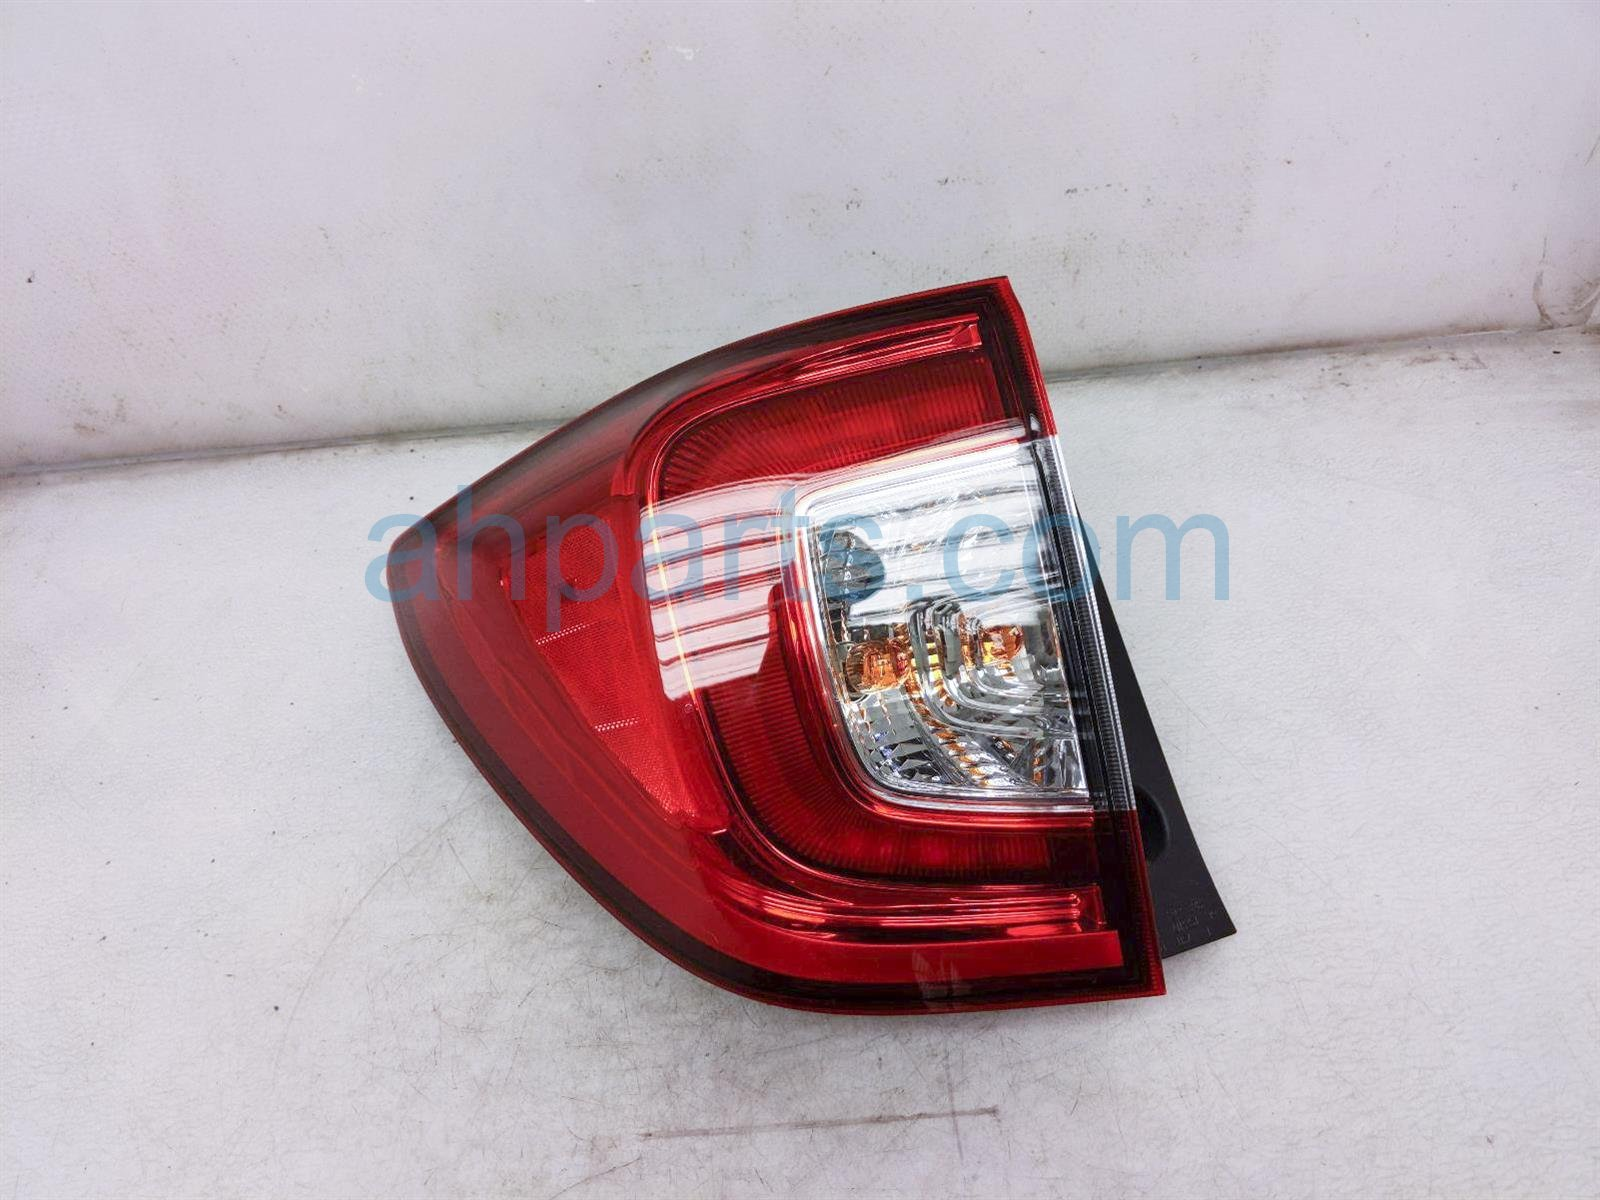 2019 Honda Passport Light / Rear Driver Tail Lamp (on Body) 33550 TGS A01 Replacement